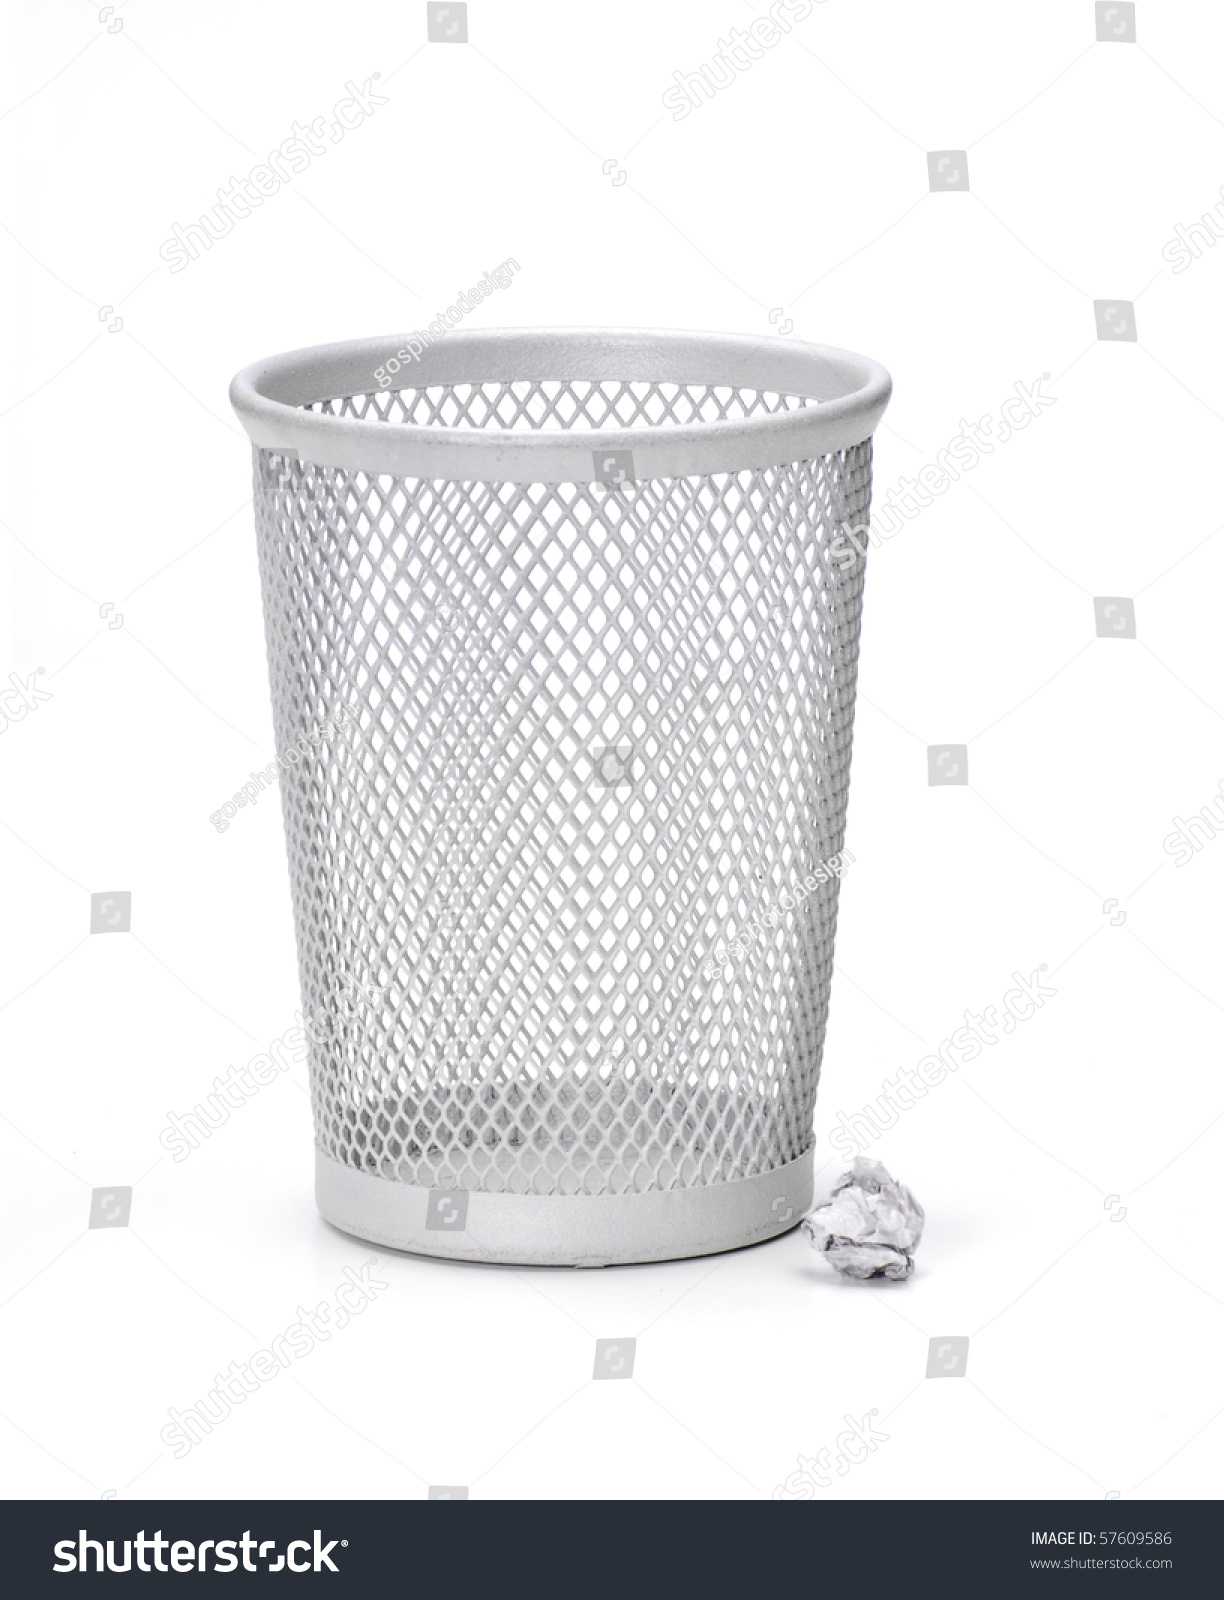 Office Wastebasket Or Trashcan And Paper On A White Background.